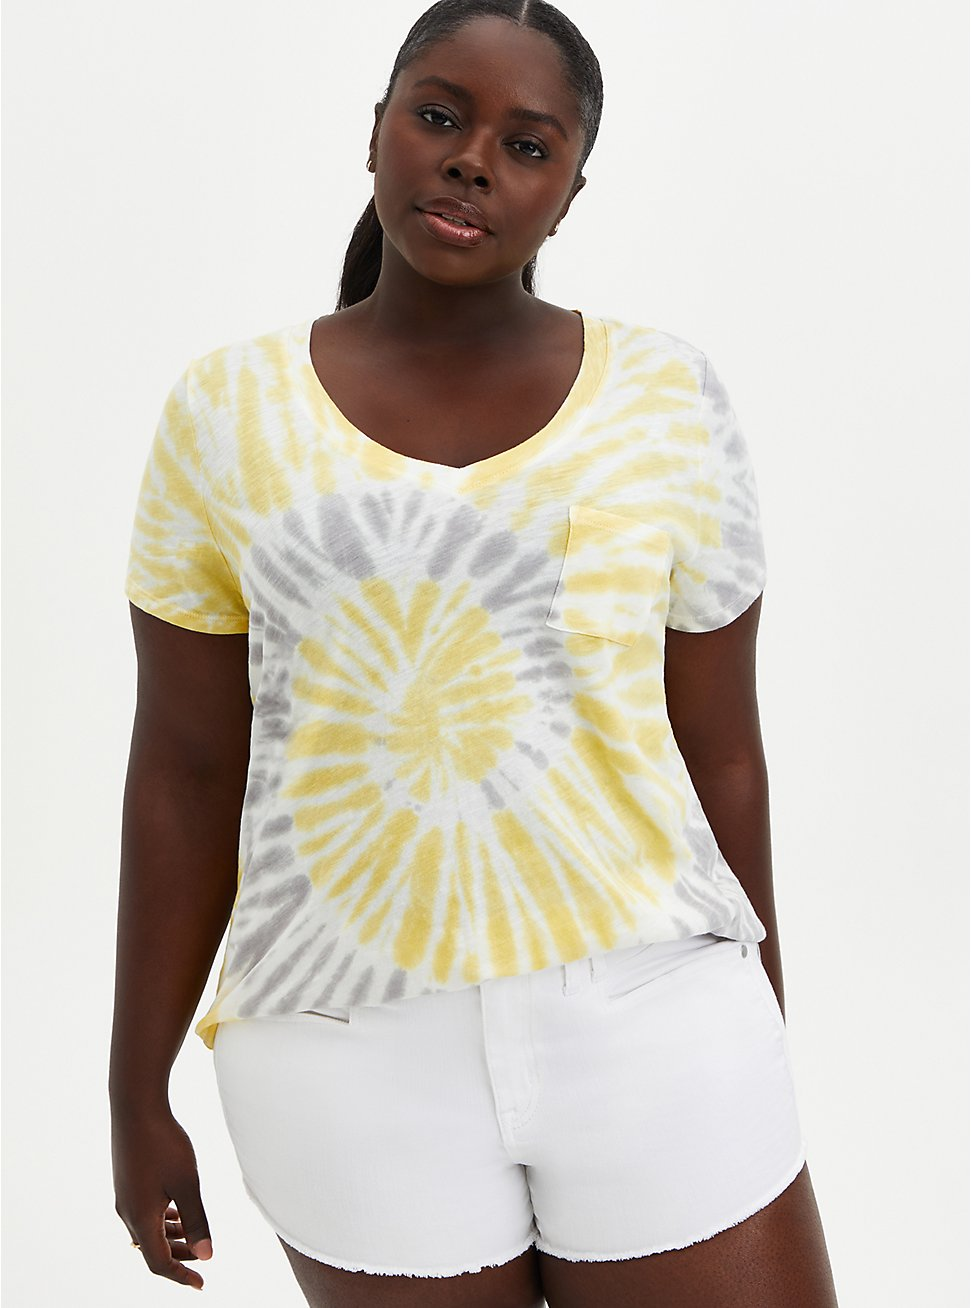 Pocket Tee - Heritage Slub Yellow & Grey Tie-Dye , OTHER PRINTS, hi-res